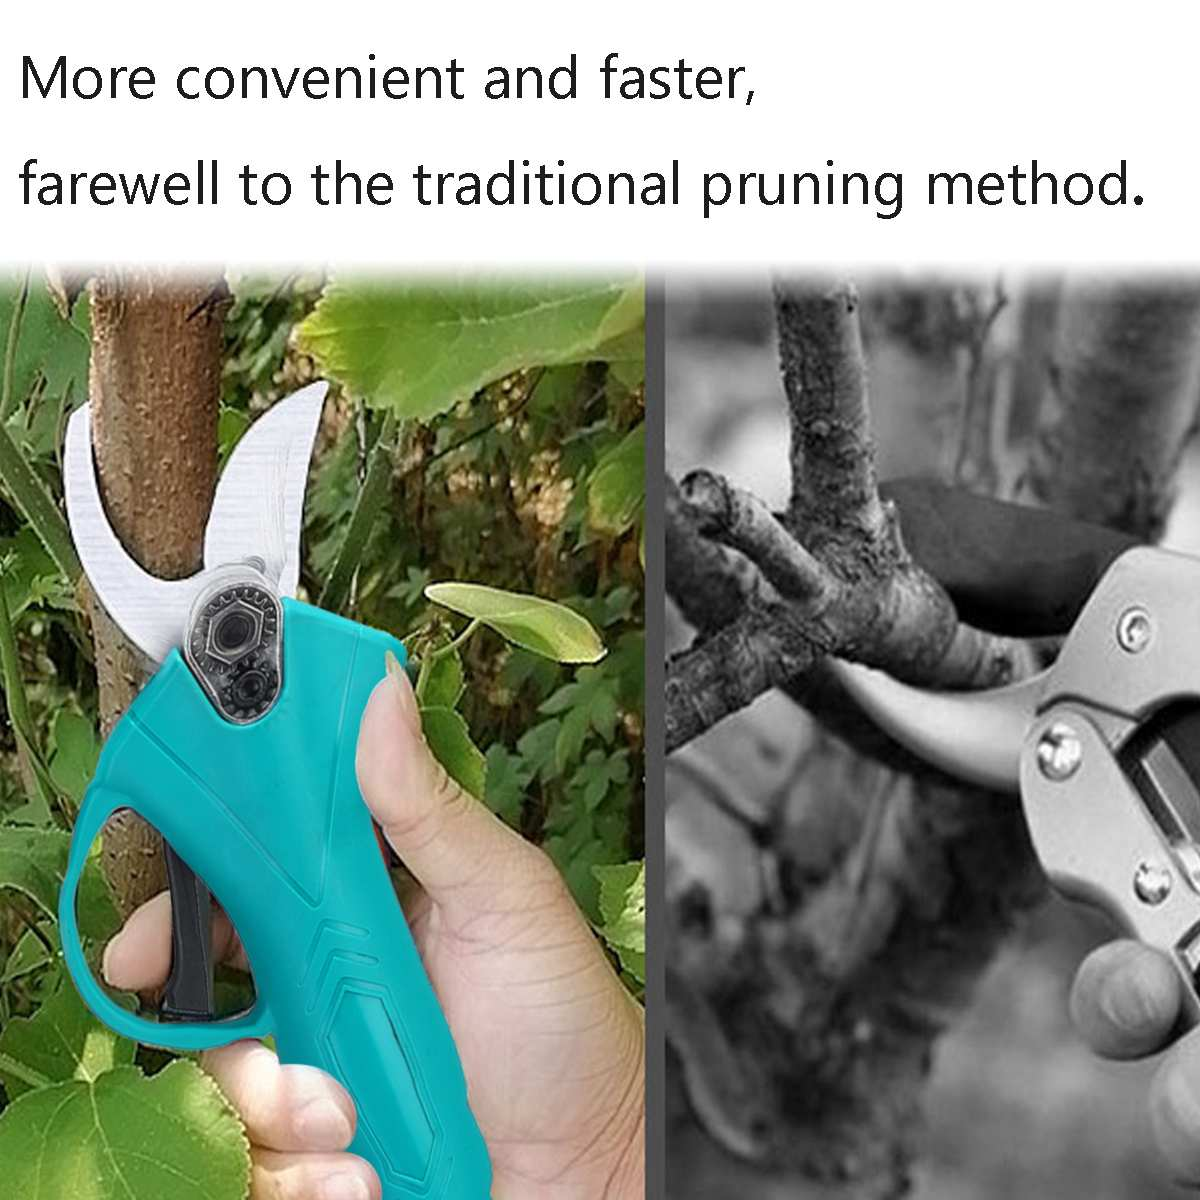 500W 88V Cordless Pruner Lithium-ion Pruning Shear Efficient Fruit Tree Bonsai Pruning Electric Tree Branches Cutter Landscaping